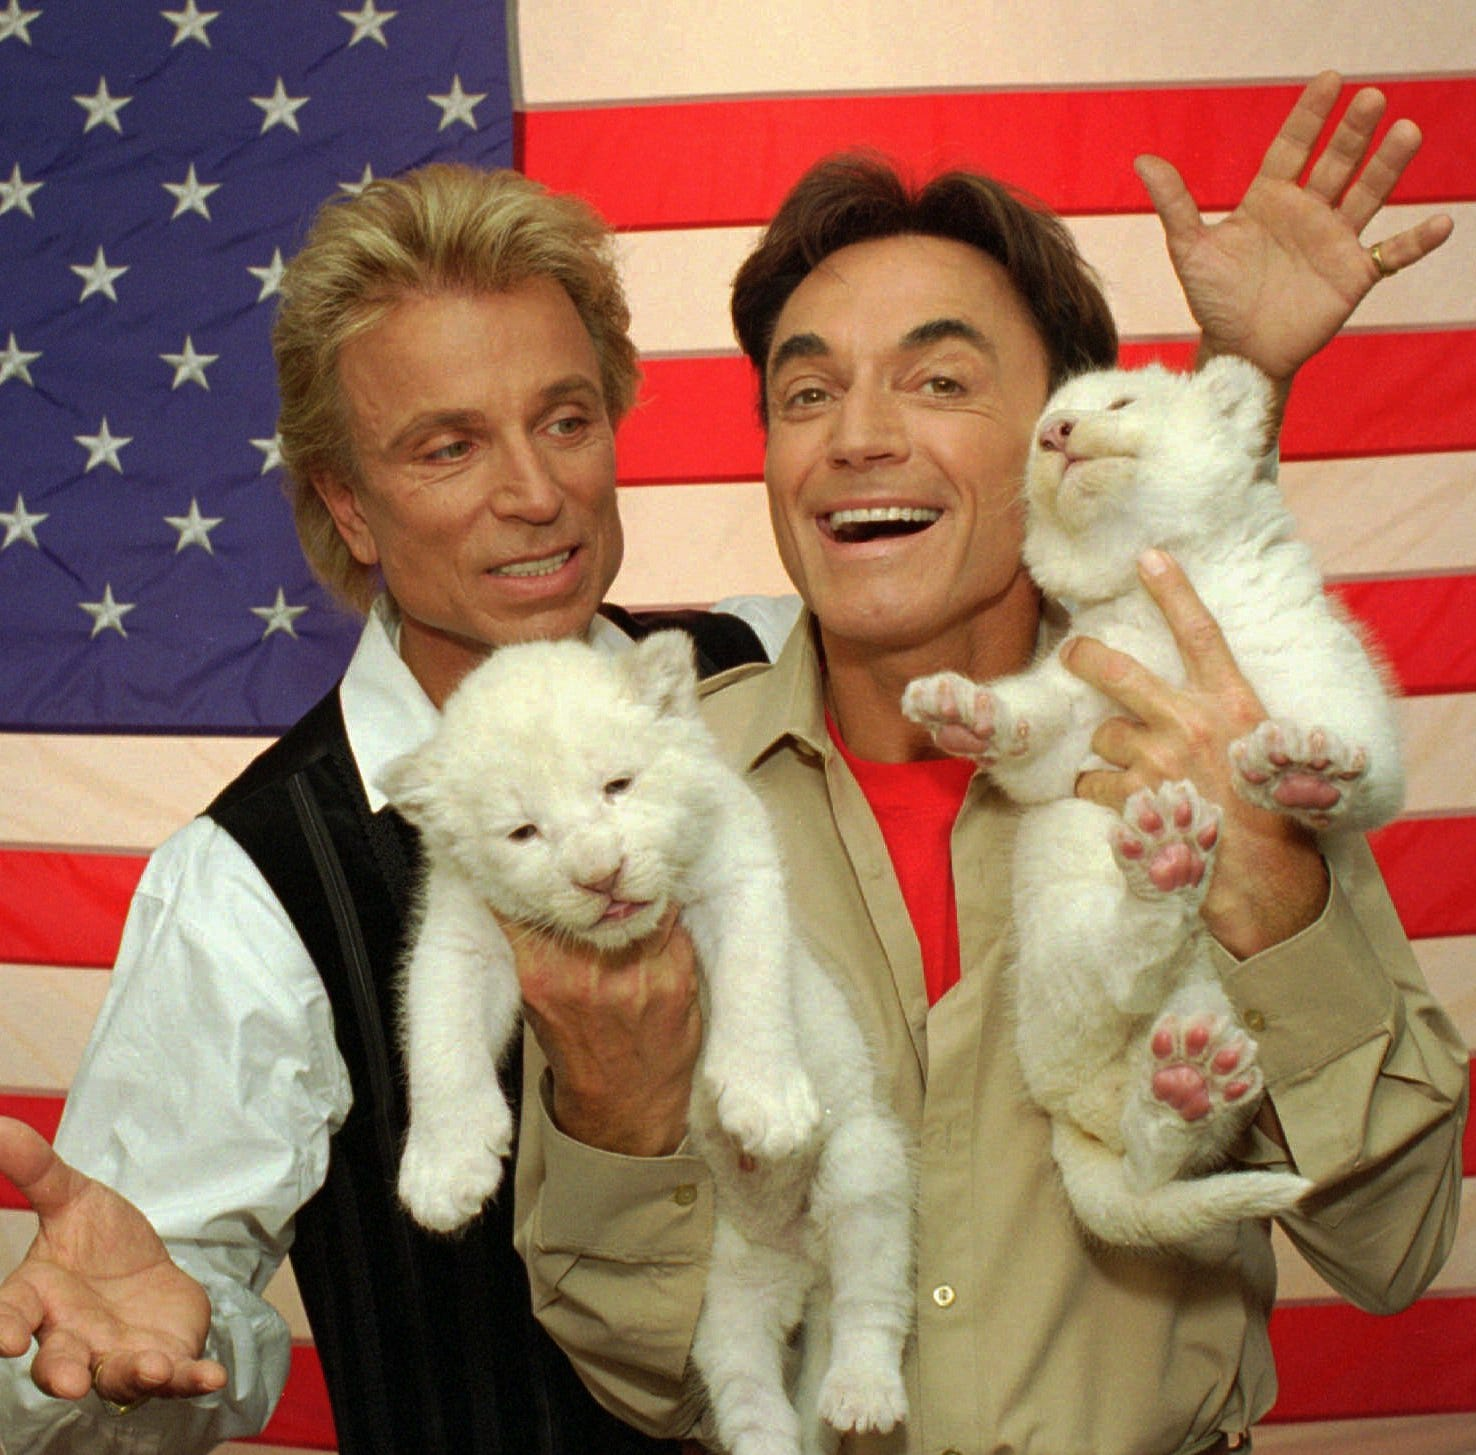 Siegfried & Roy tiger handler says the real cause of 2003 mauling was covered up